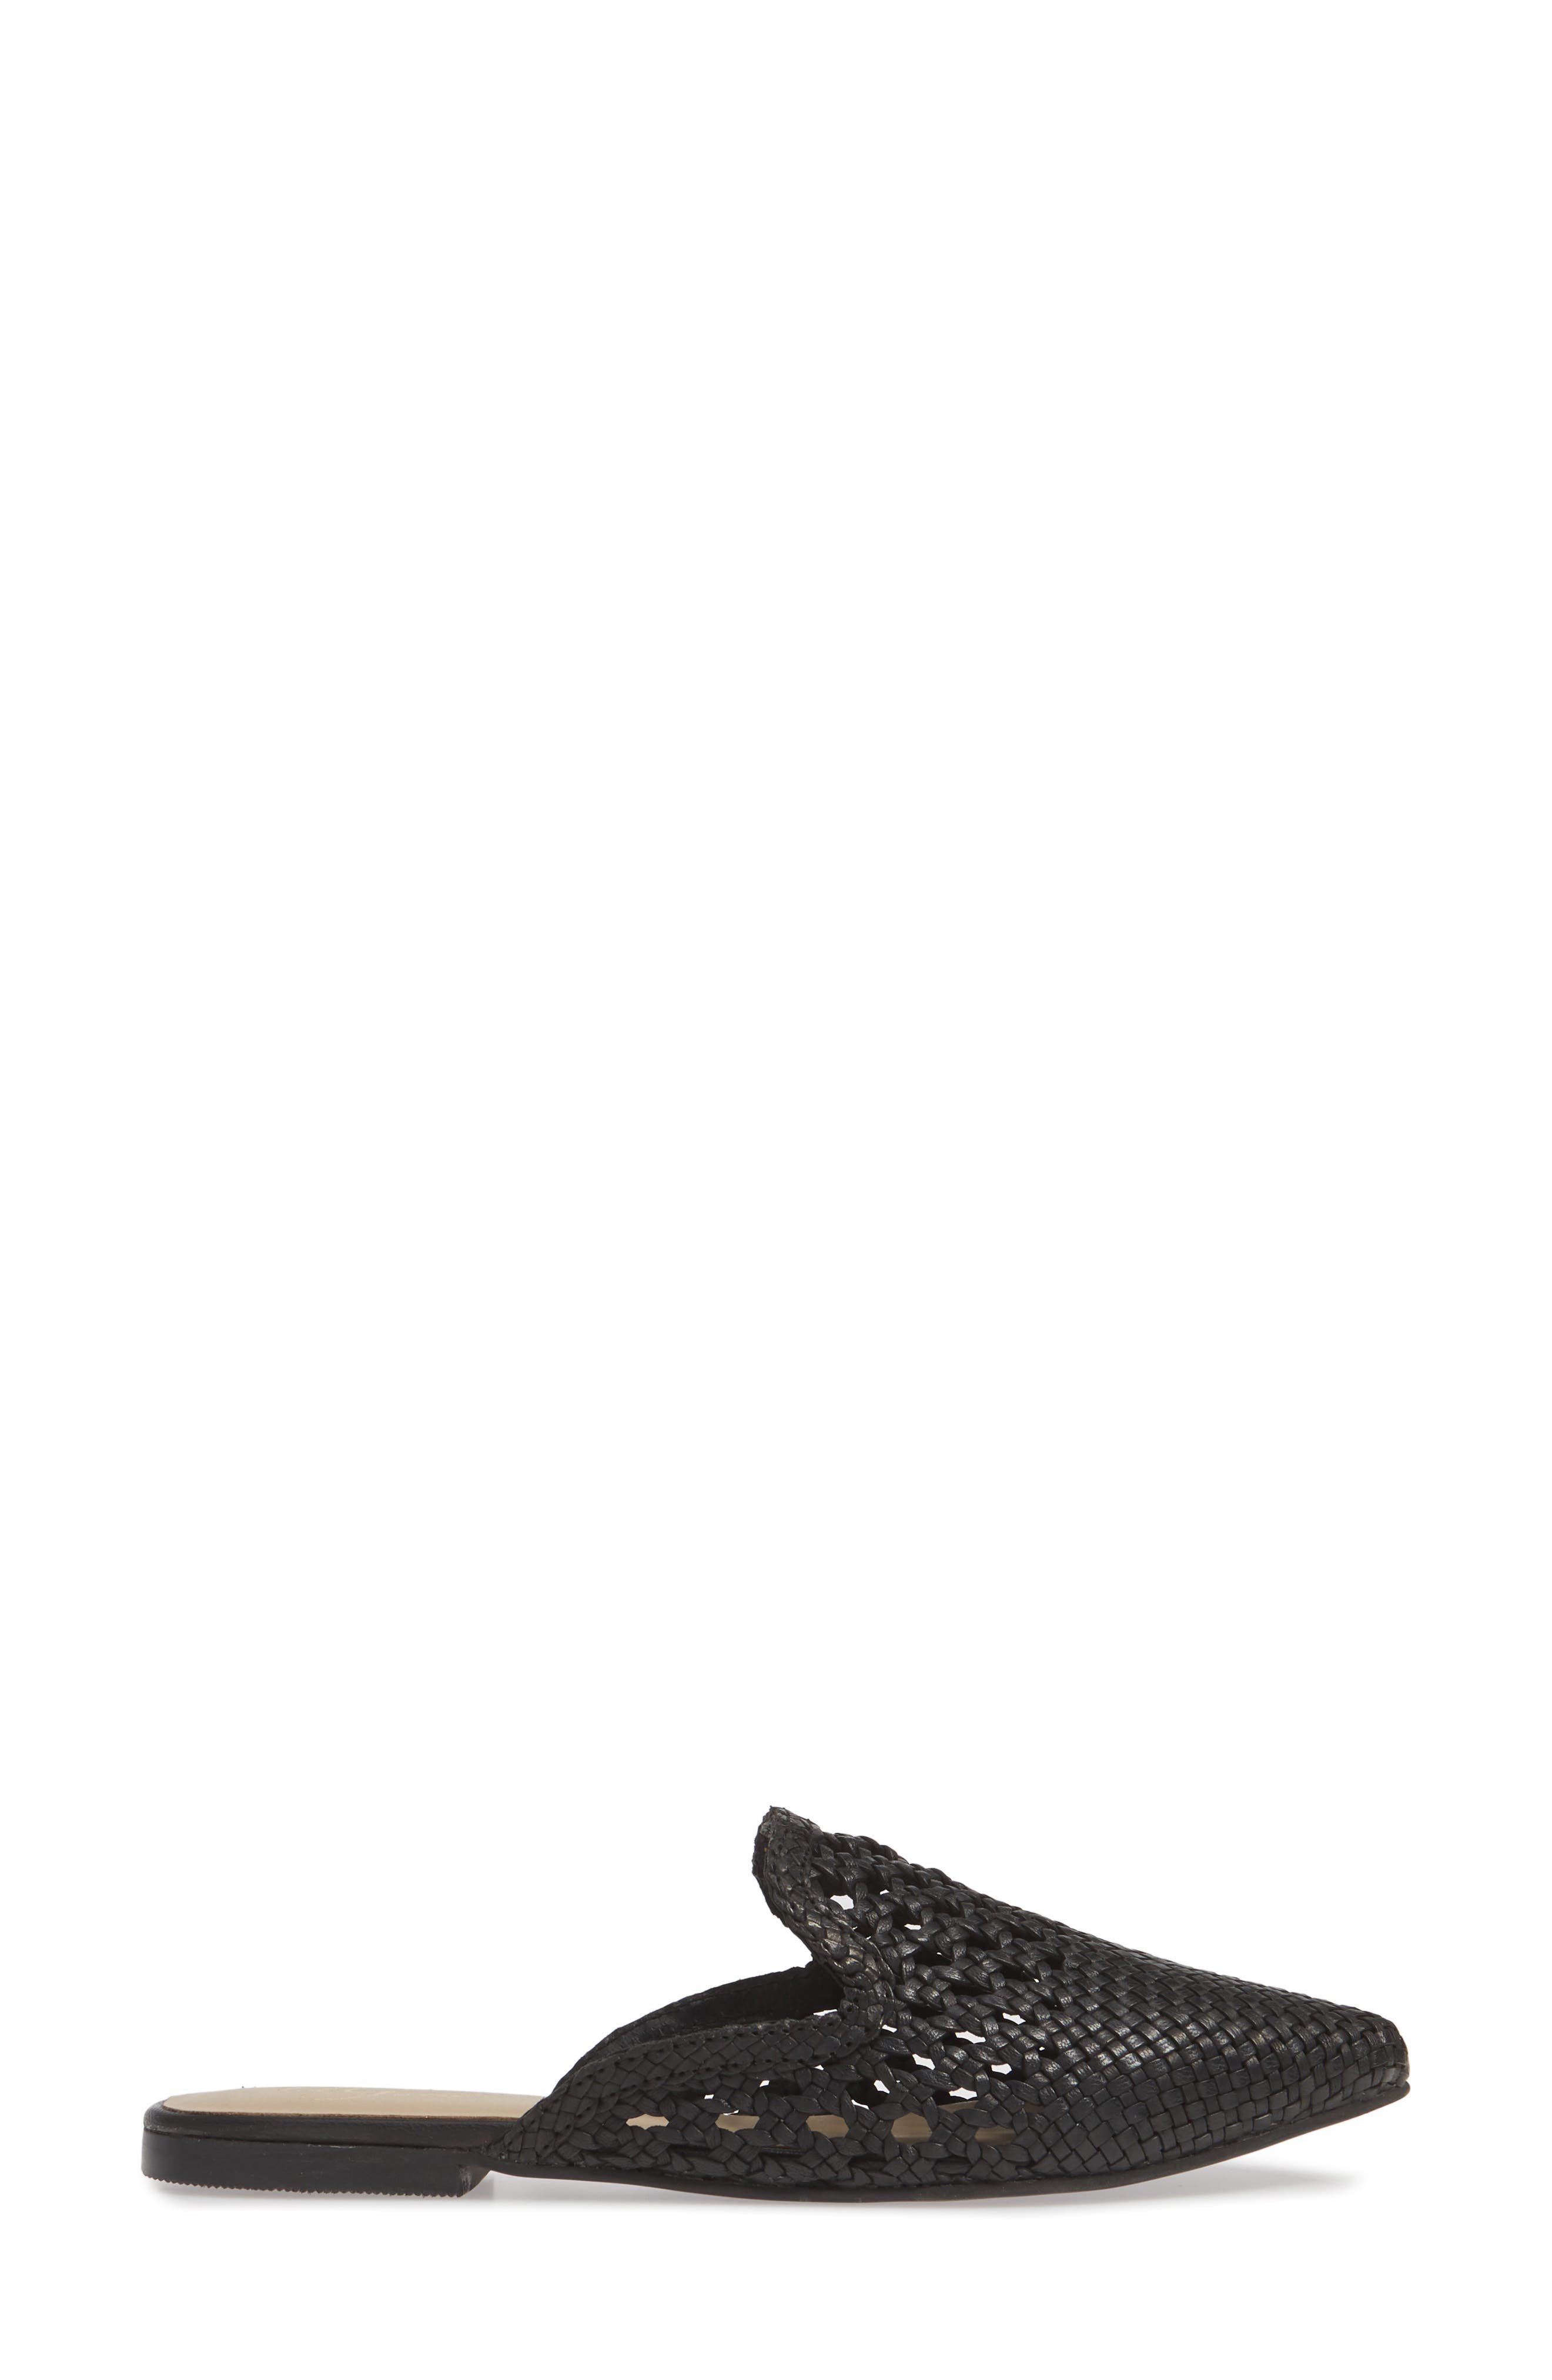 Corra Woven Loafer Mule,                             Alternate thumbnail 3, color,                             BLACK LEATHER